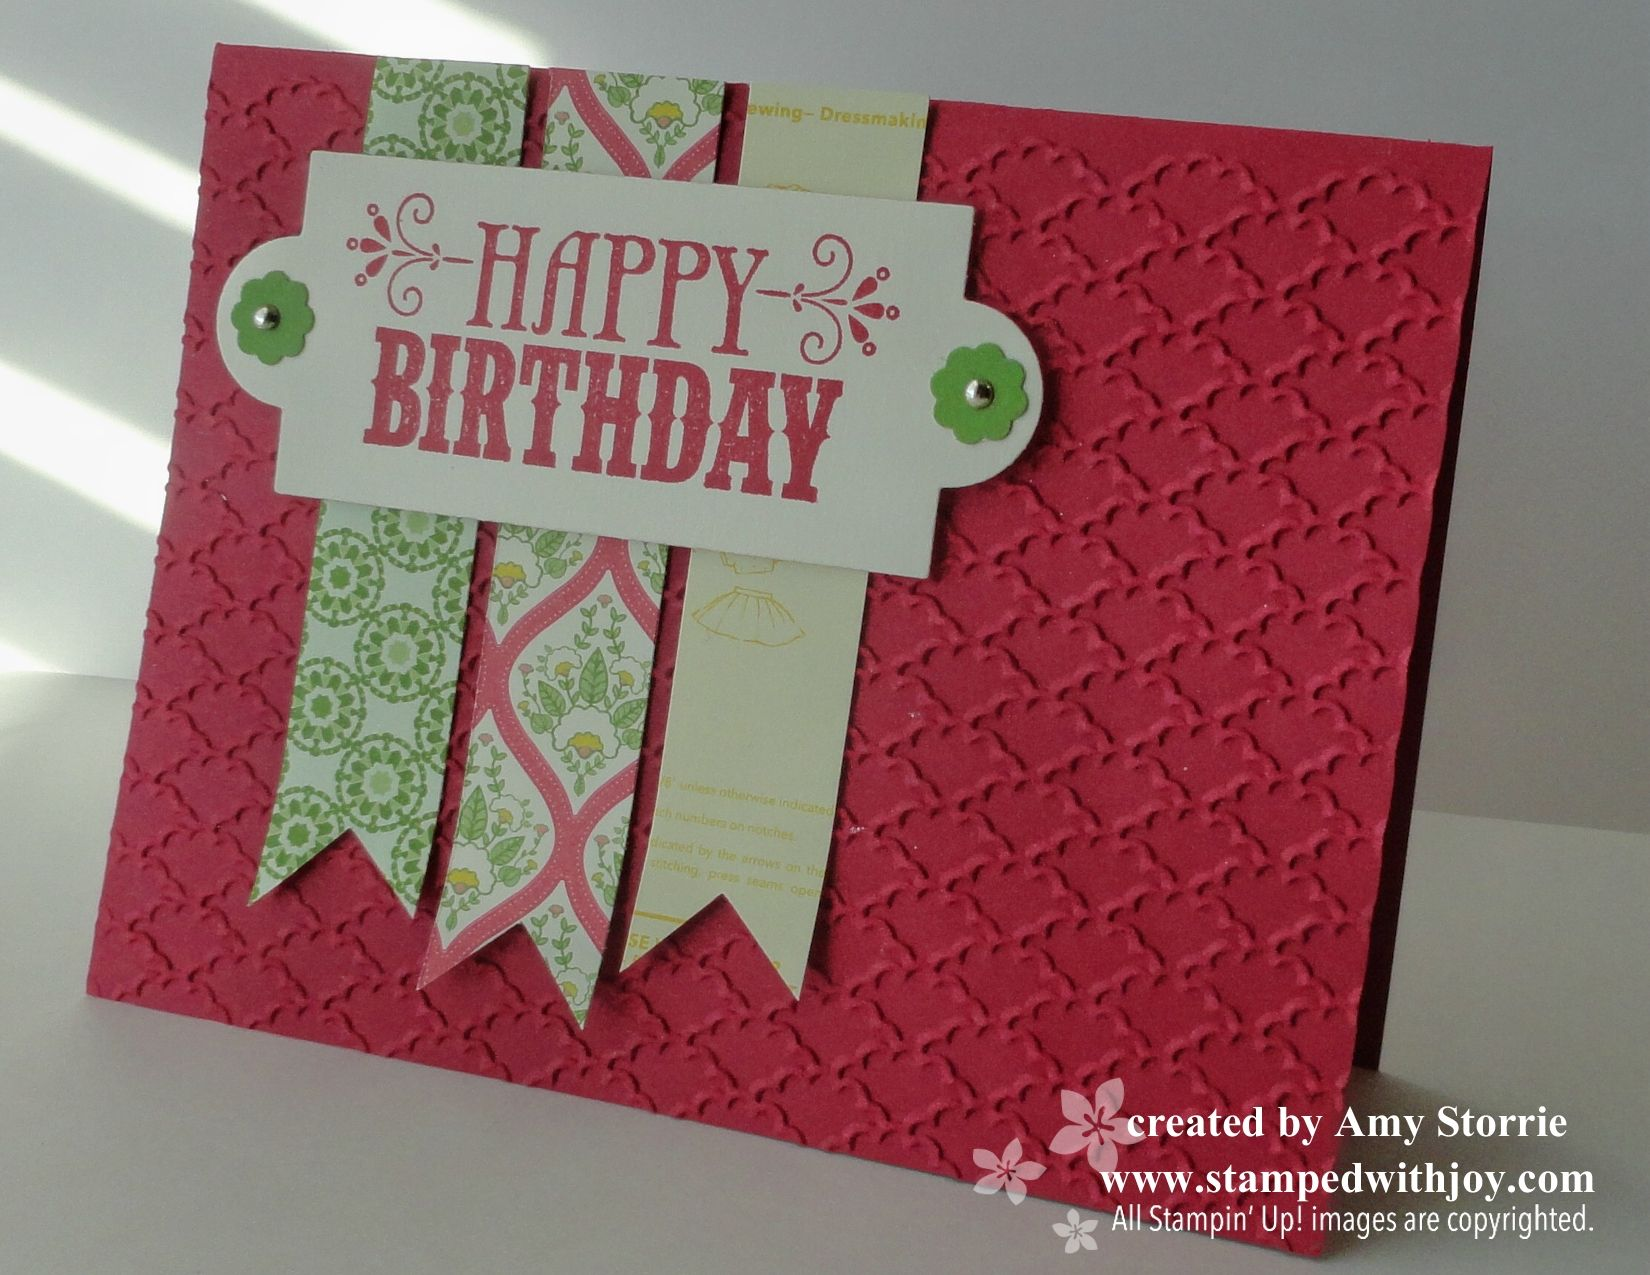 Clean homemade birthday cards grandpa and ideas for making birthday clean homemade birthday cards grandpa and ideas for making birthday cards at home m4hsunfo